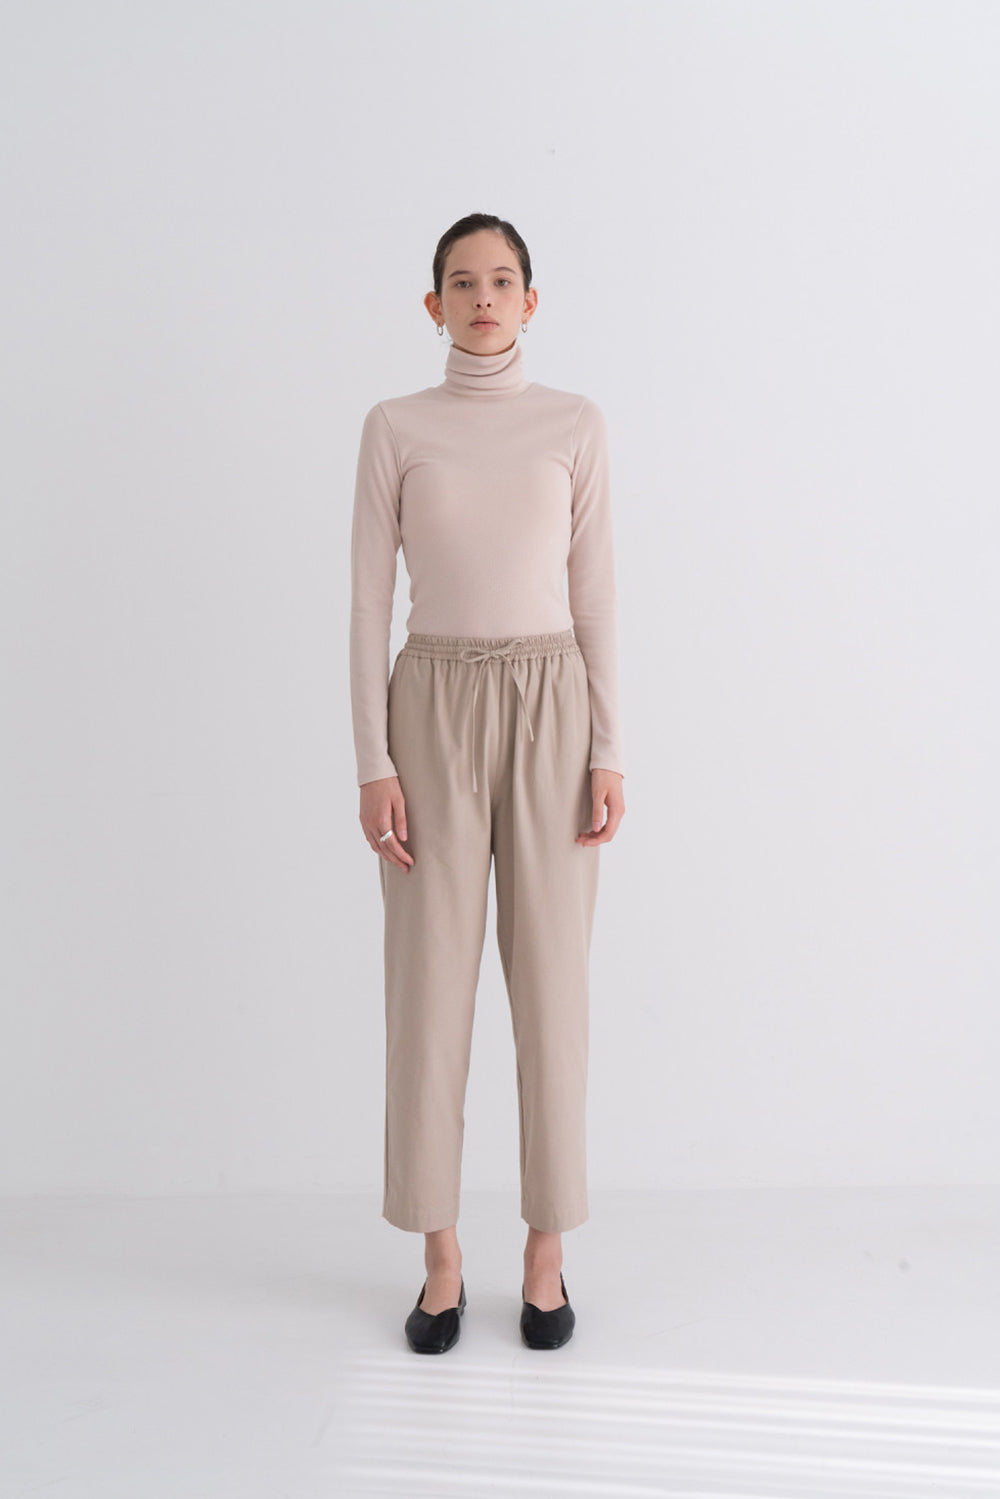 NOTA Relax Banding Pants Beige Modest Loose-Fitting Women's Trousers With Elastic Waistband, Ankle-Length Cut, Four Pockets